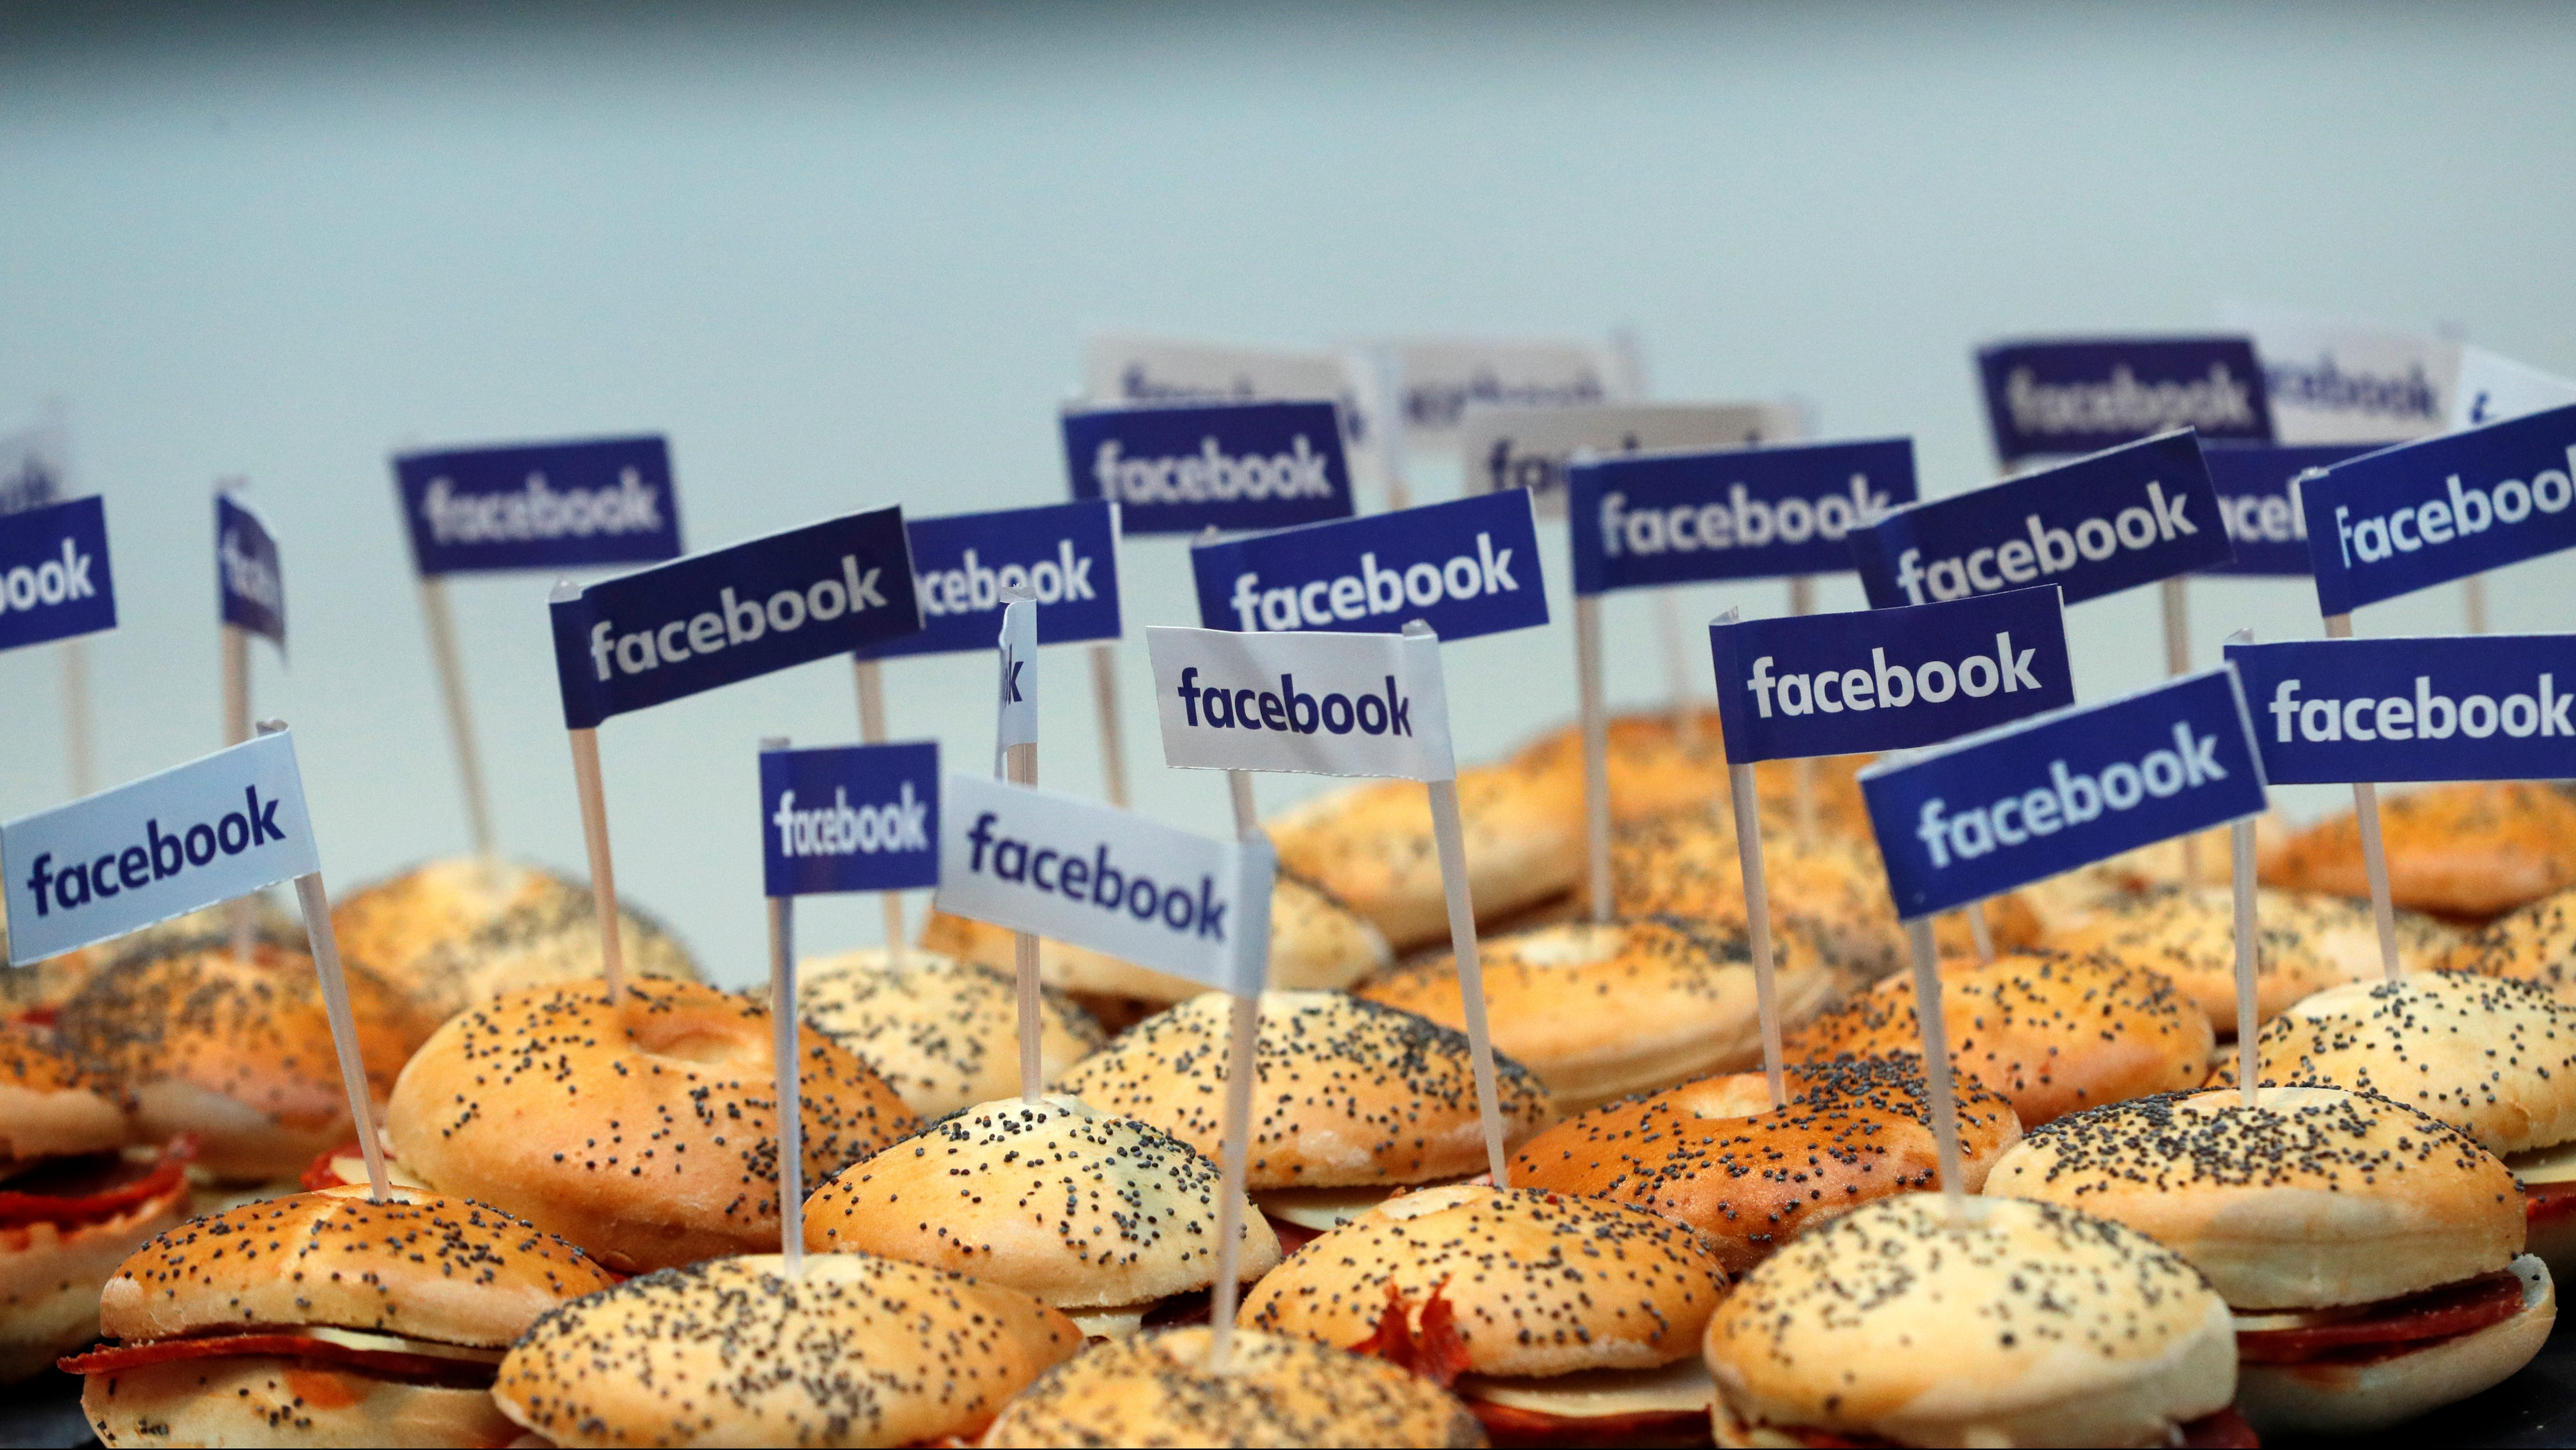 Miniature Facebook banners are seen on snacks prepared for the visit by Facebook's Chief Operating Officer in Paris, France, January 17, 2017.  REUTERS/Philippe Wojazer - RC1840EBA560